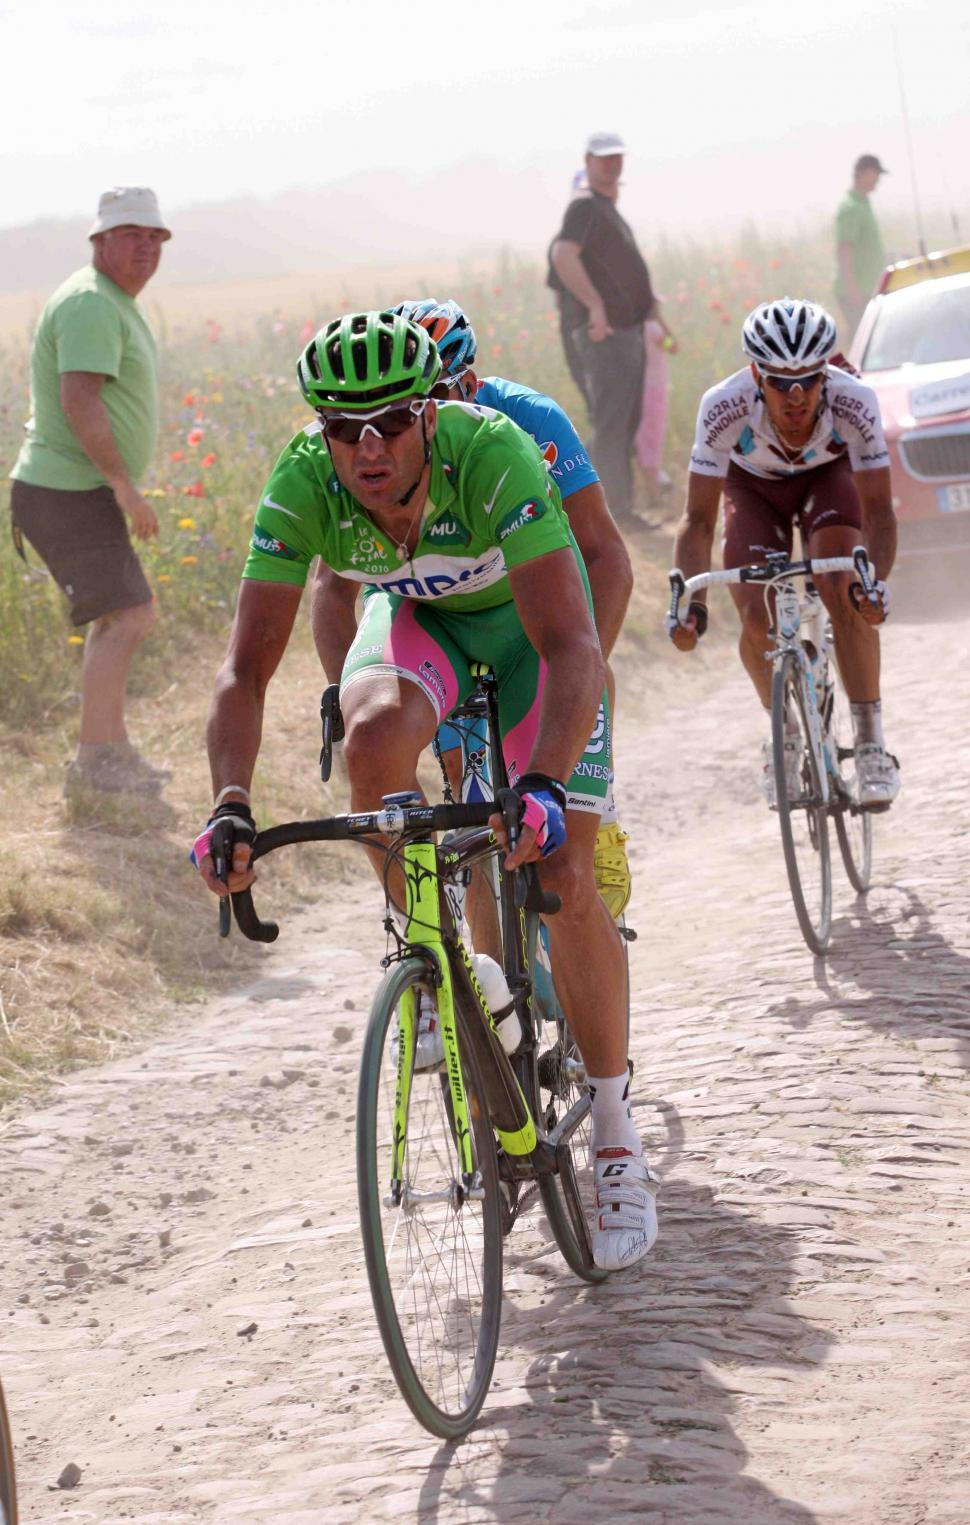 Alessandro Petacchi in the Tour de France green jersey © PhotoSport International.jpg